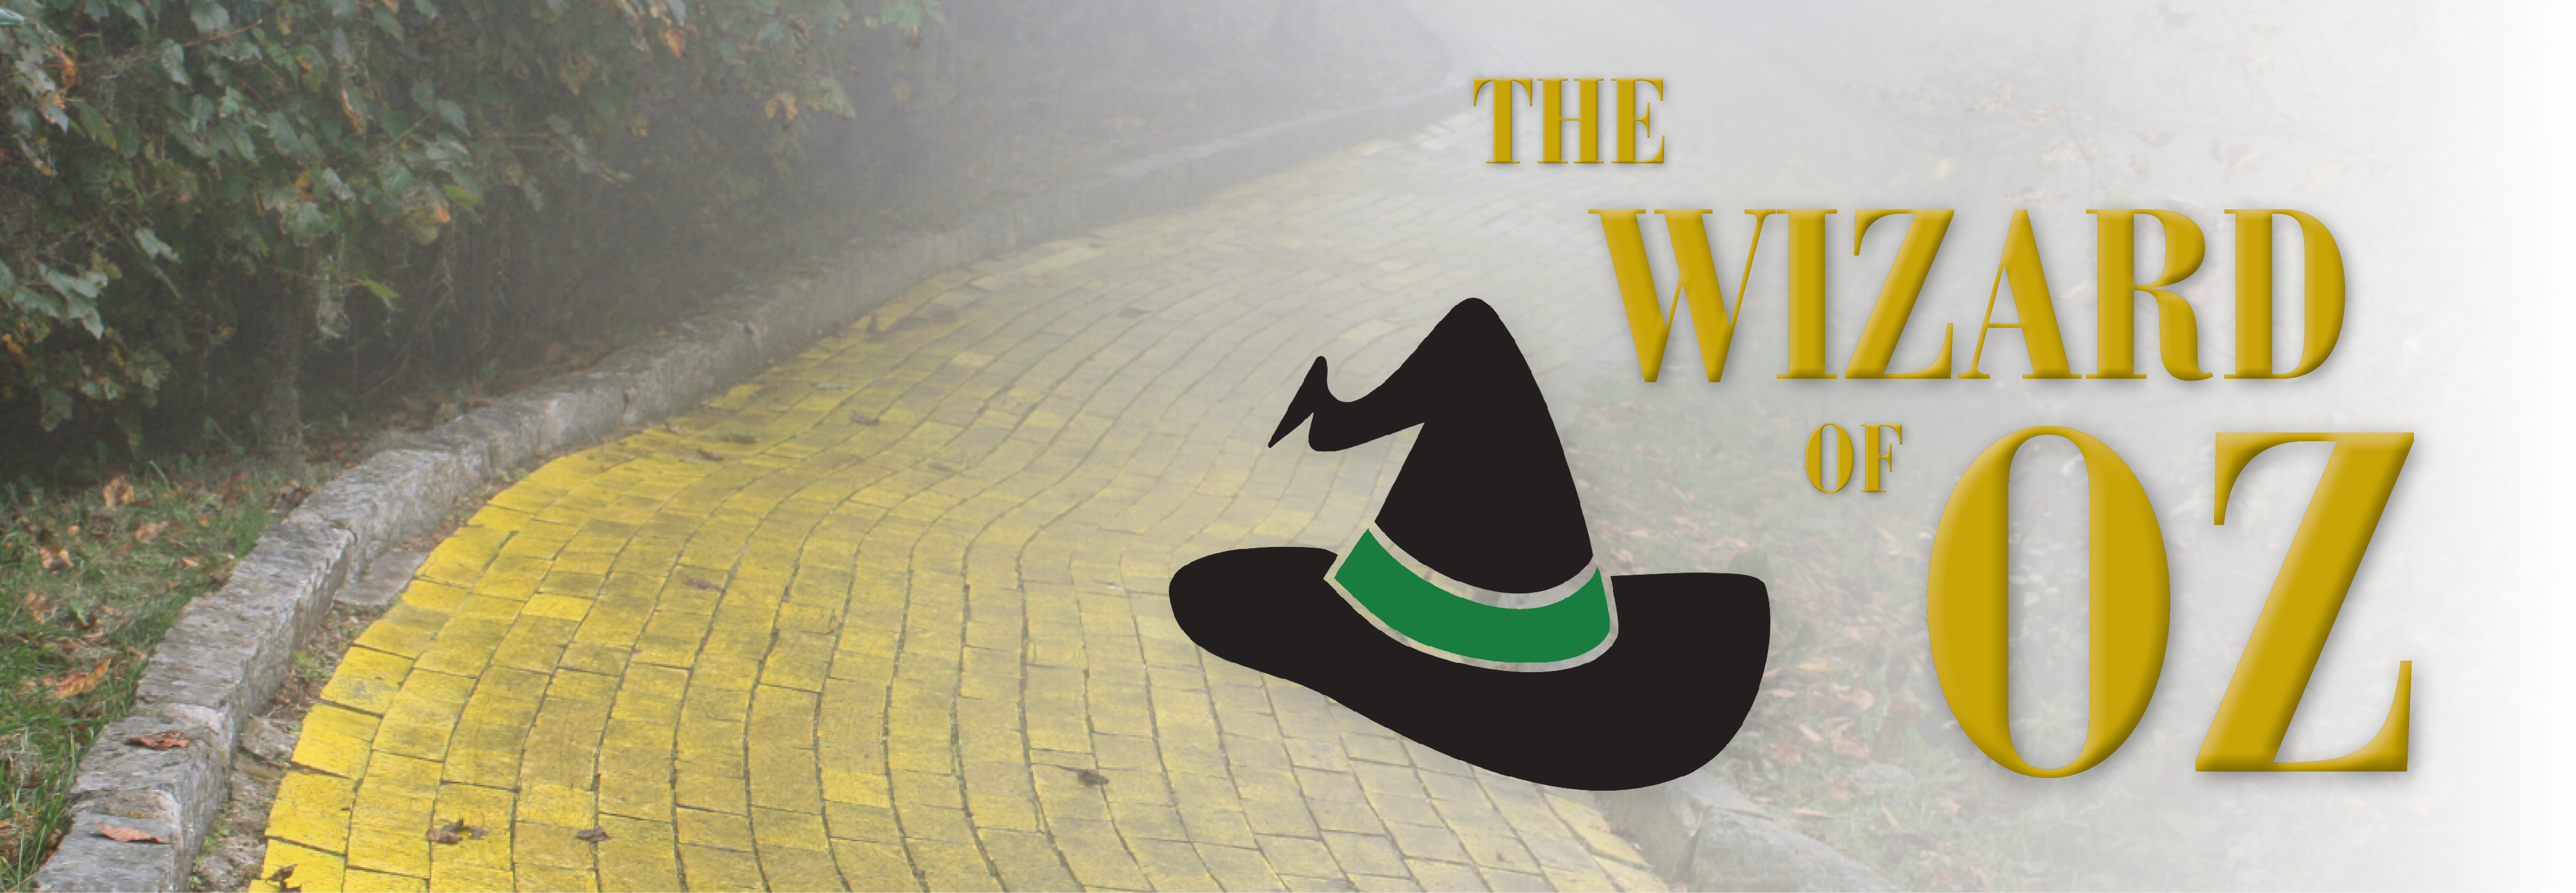 "misty photograph of a yellow brick road with ""The Wizard of Oz"" title graphic and a stylized witch's hat"